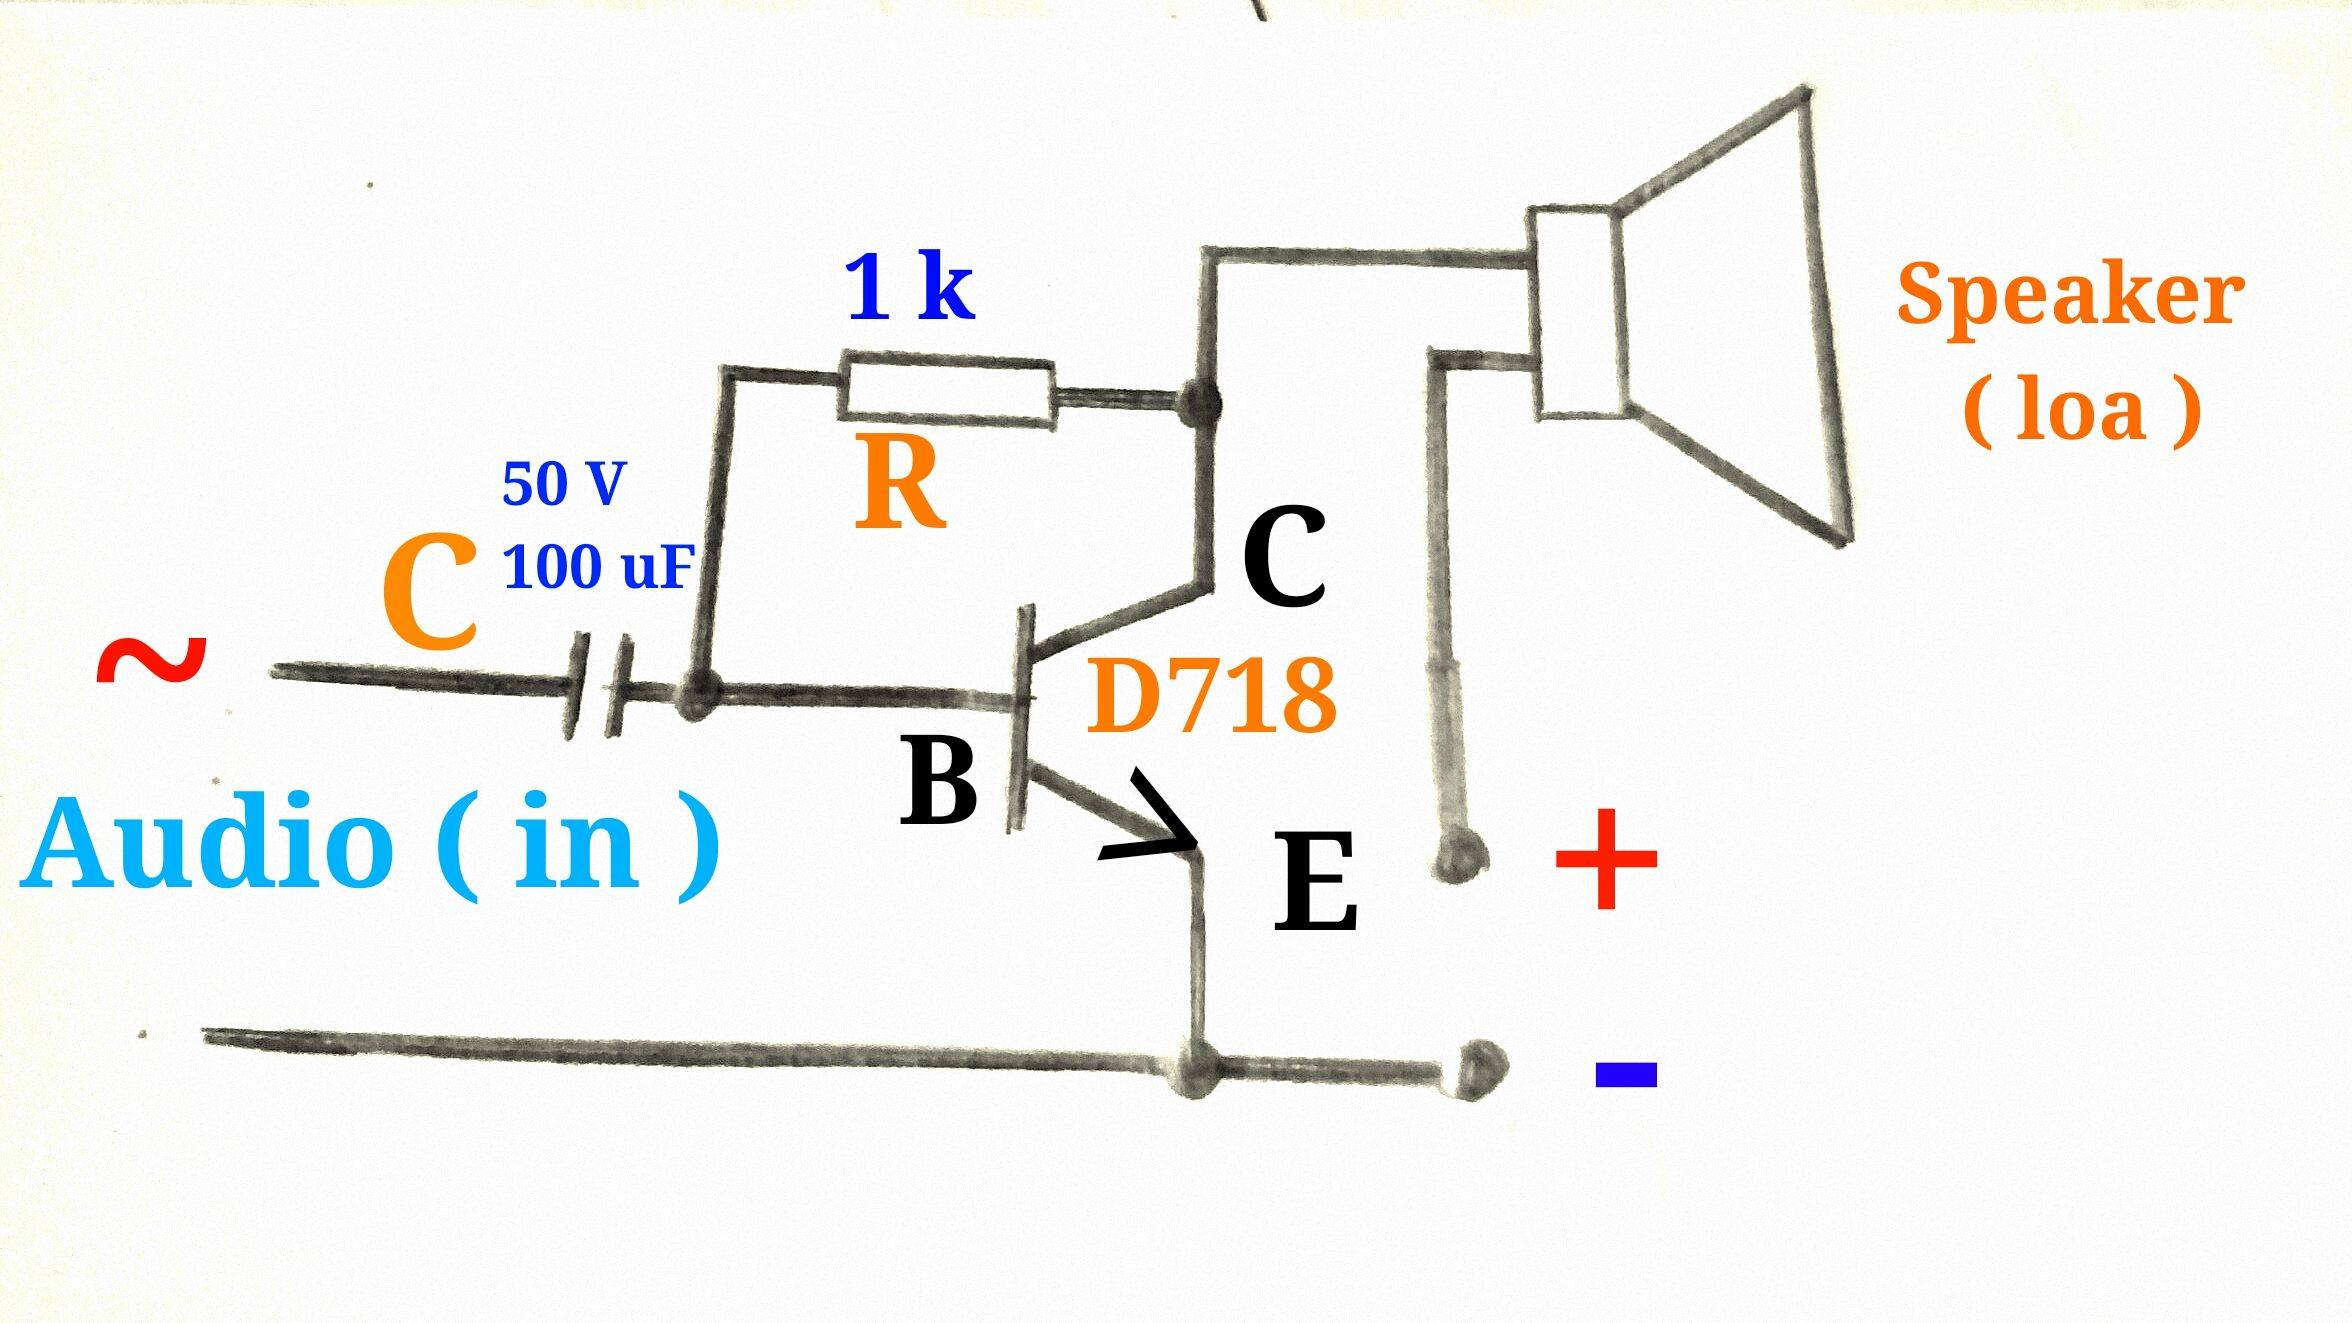 Mch Khuch I M Thanh Dng Transistor D718 In T Trong 2018 Electronic Circuits Diagramselectronics Projects Designshobby